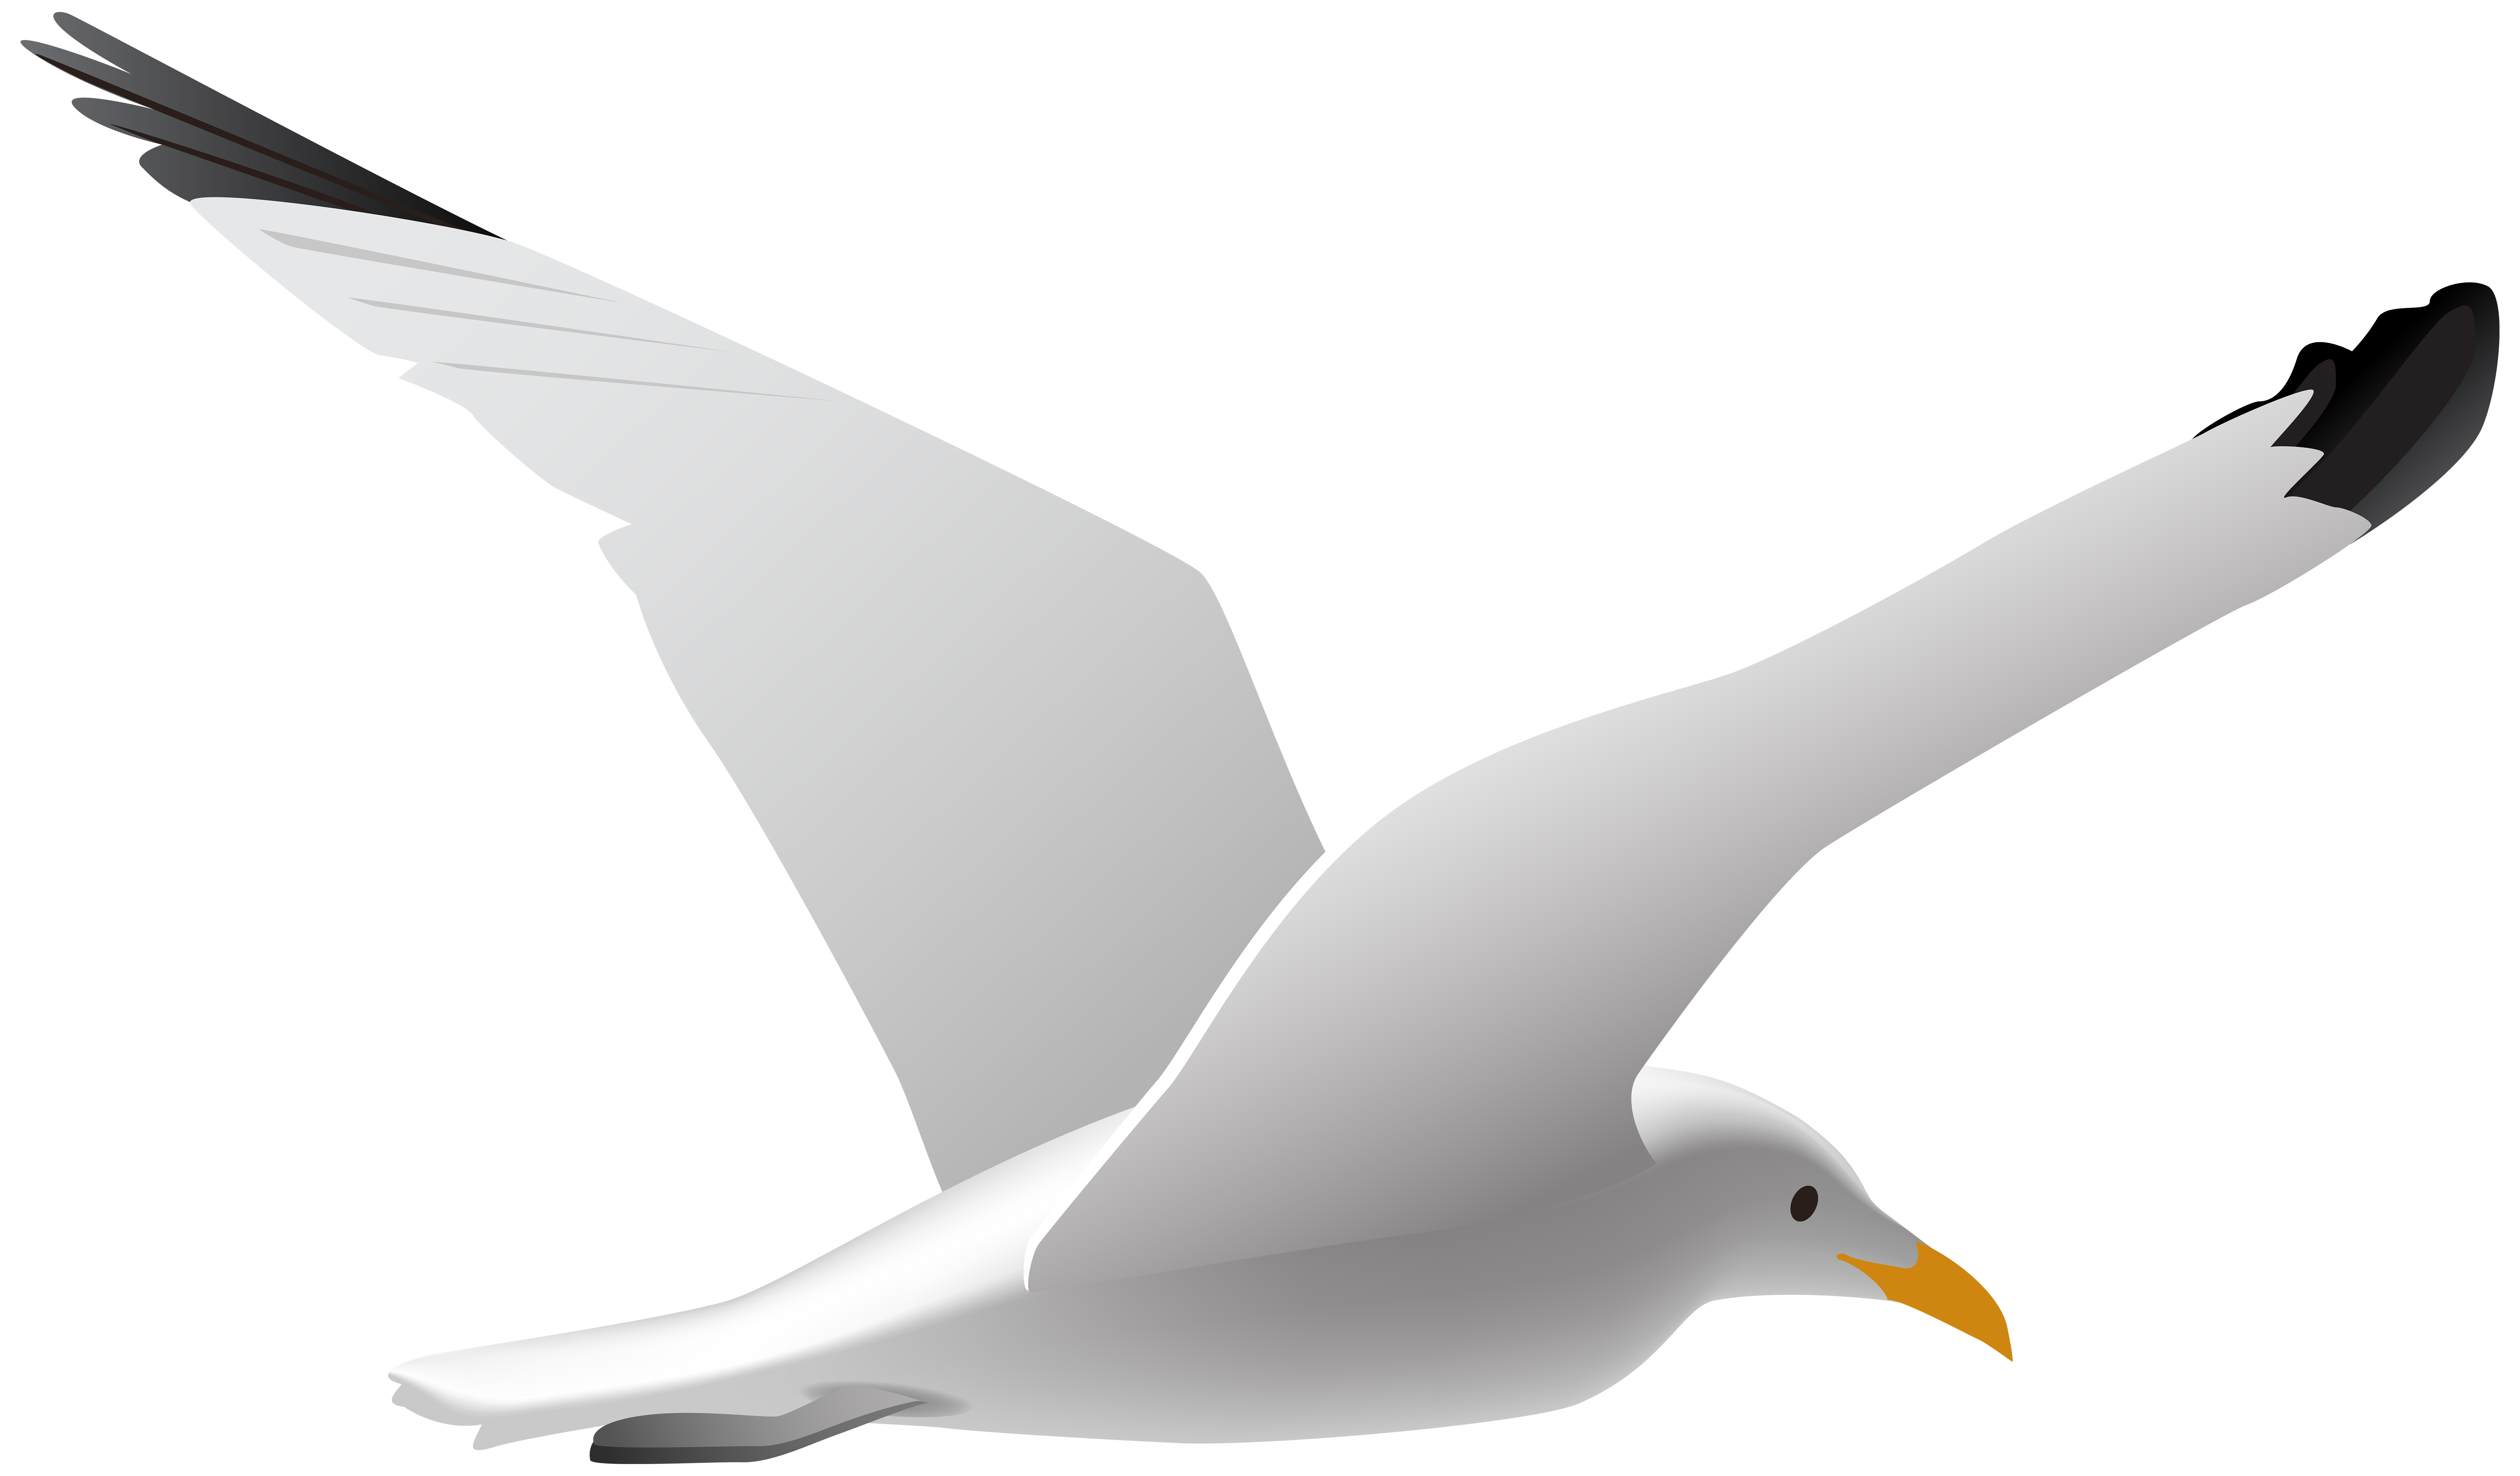 Seagull clipart Download Printable Seagull Free #8072